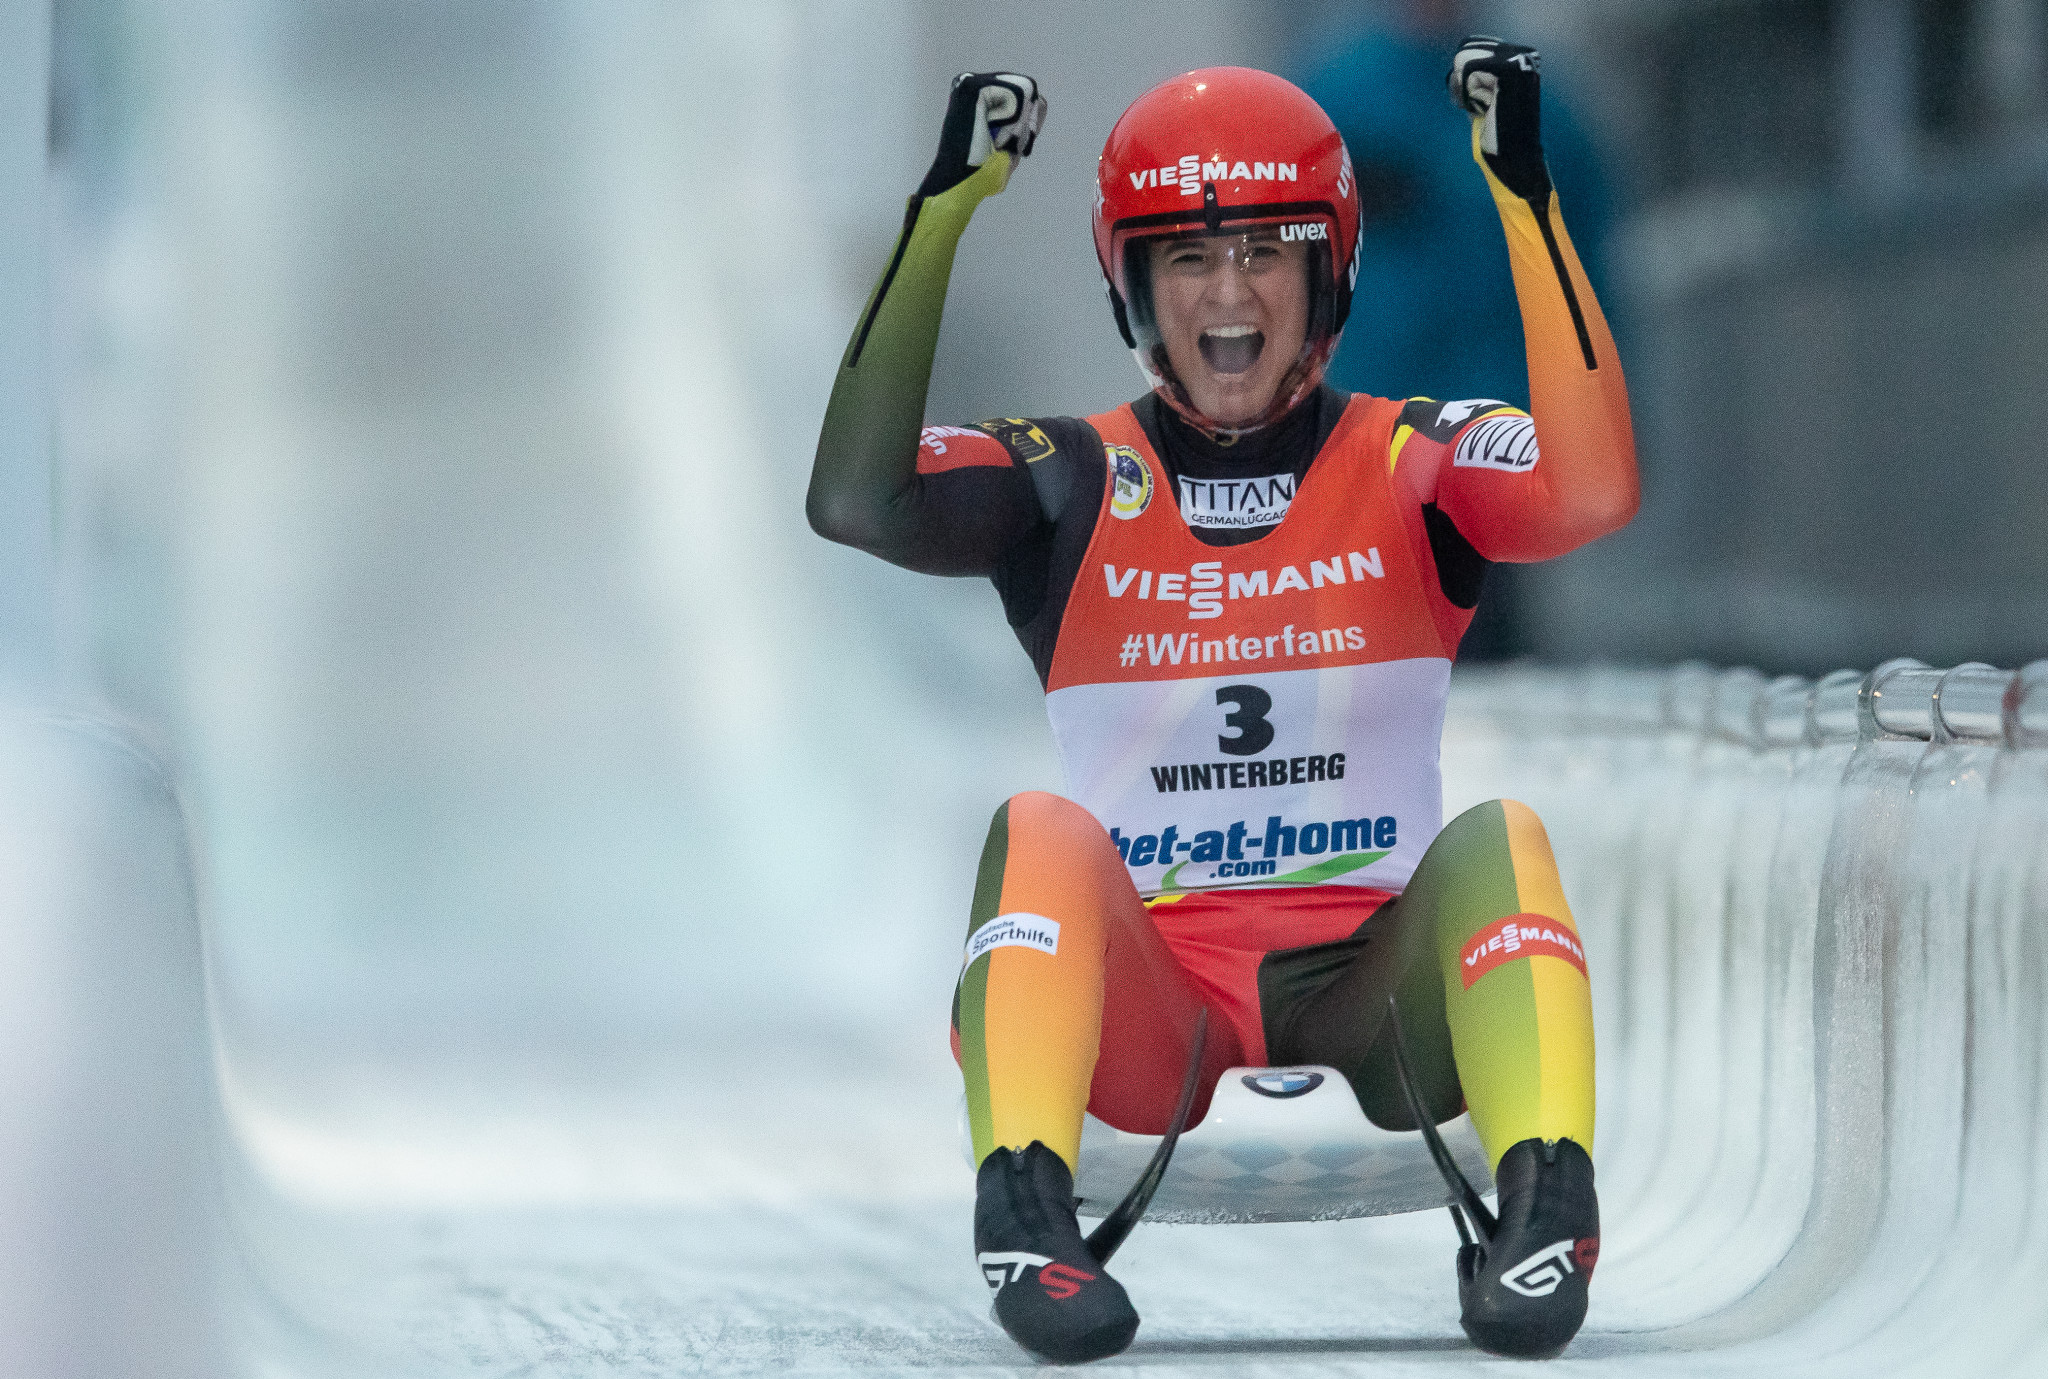 Geisenberger retains European title with victory at Luge World Cup in Oberhof